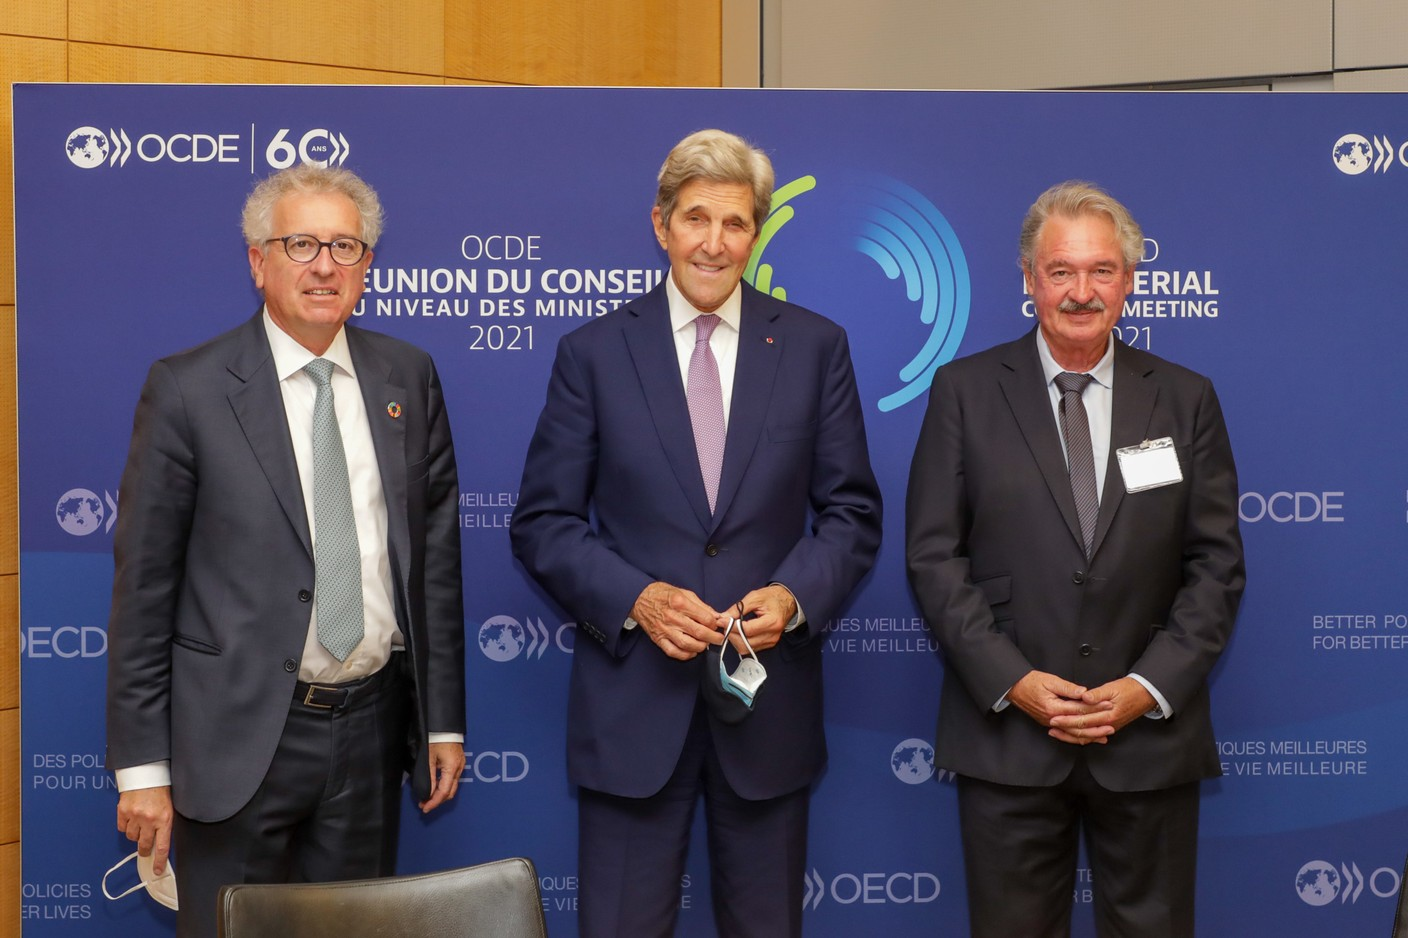 (from left to right) Pierre Gramegna, Minister of Finance; John Kerry, Special Envoy of the President of the United States of America on Climate Change; Jean Asselborn, Minister for Foreign and European Affairs SIP/LUC DEFLORENNE